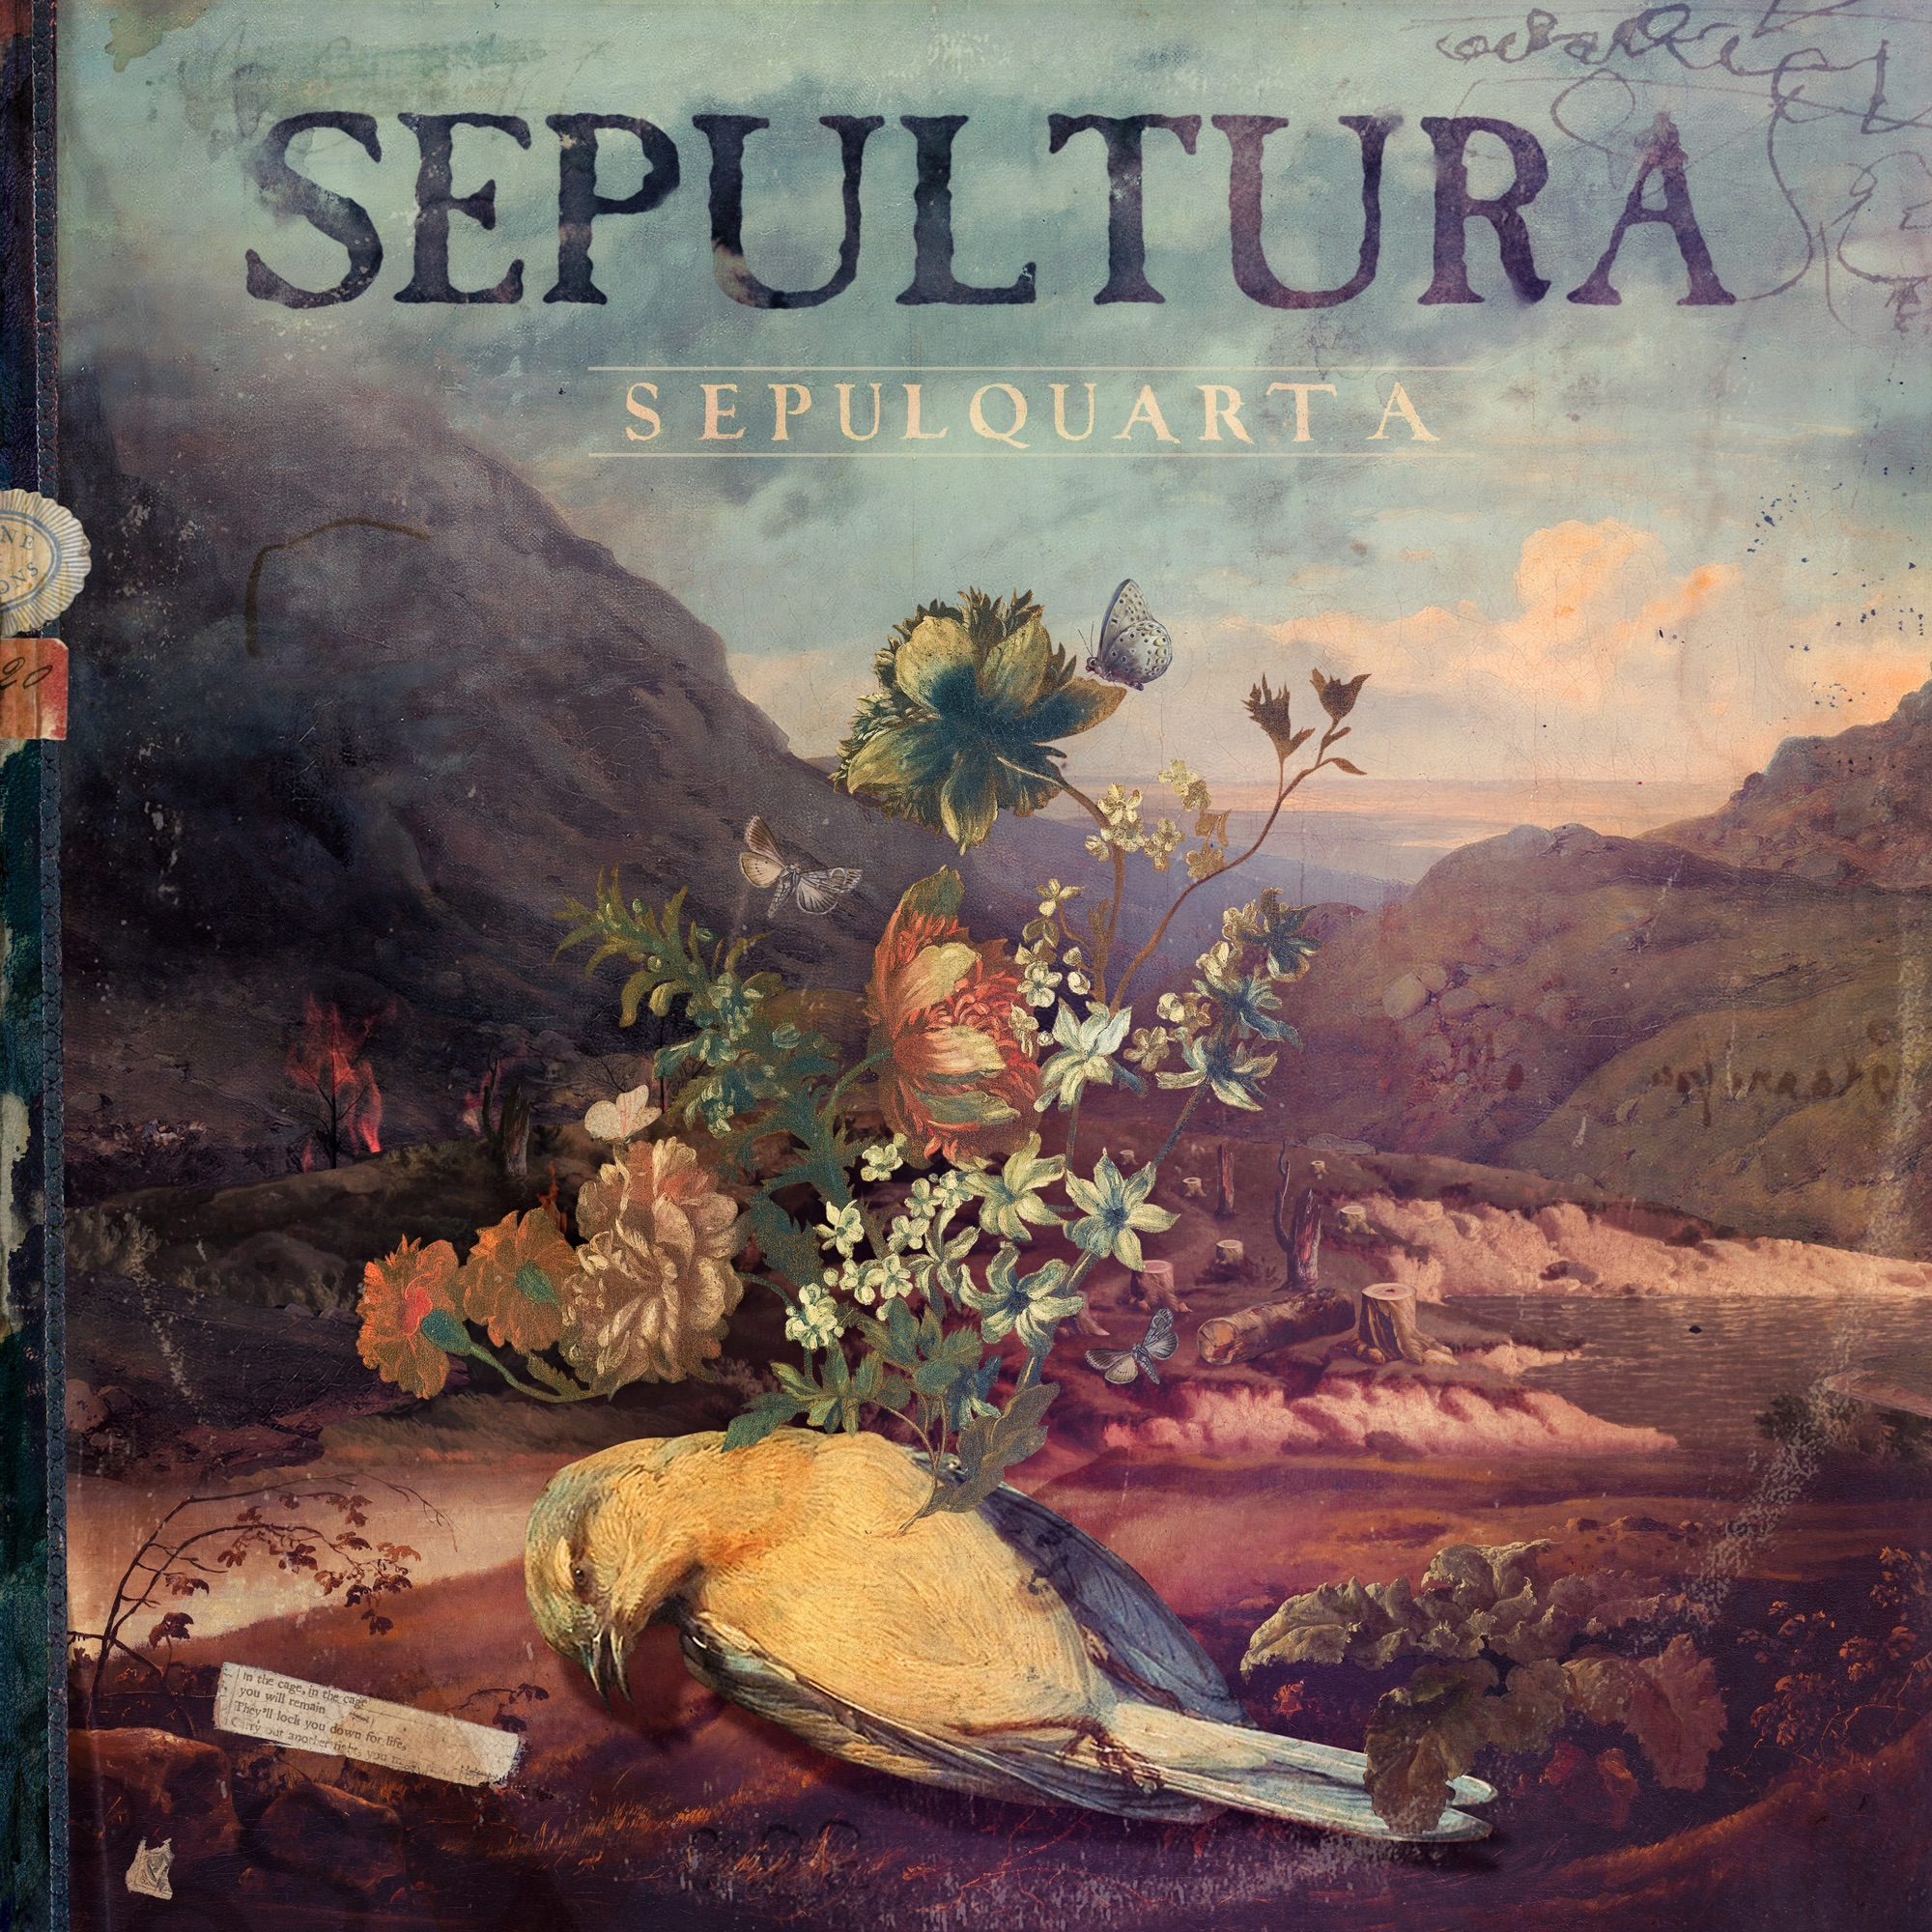 Art for Mask (feat. Devin Townsend) by Sepultura